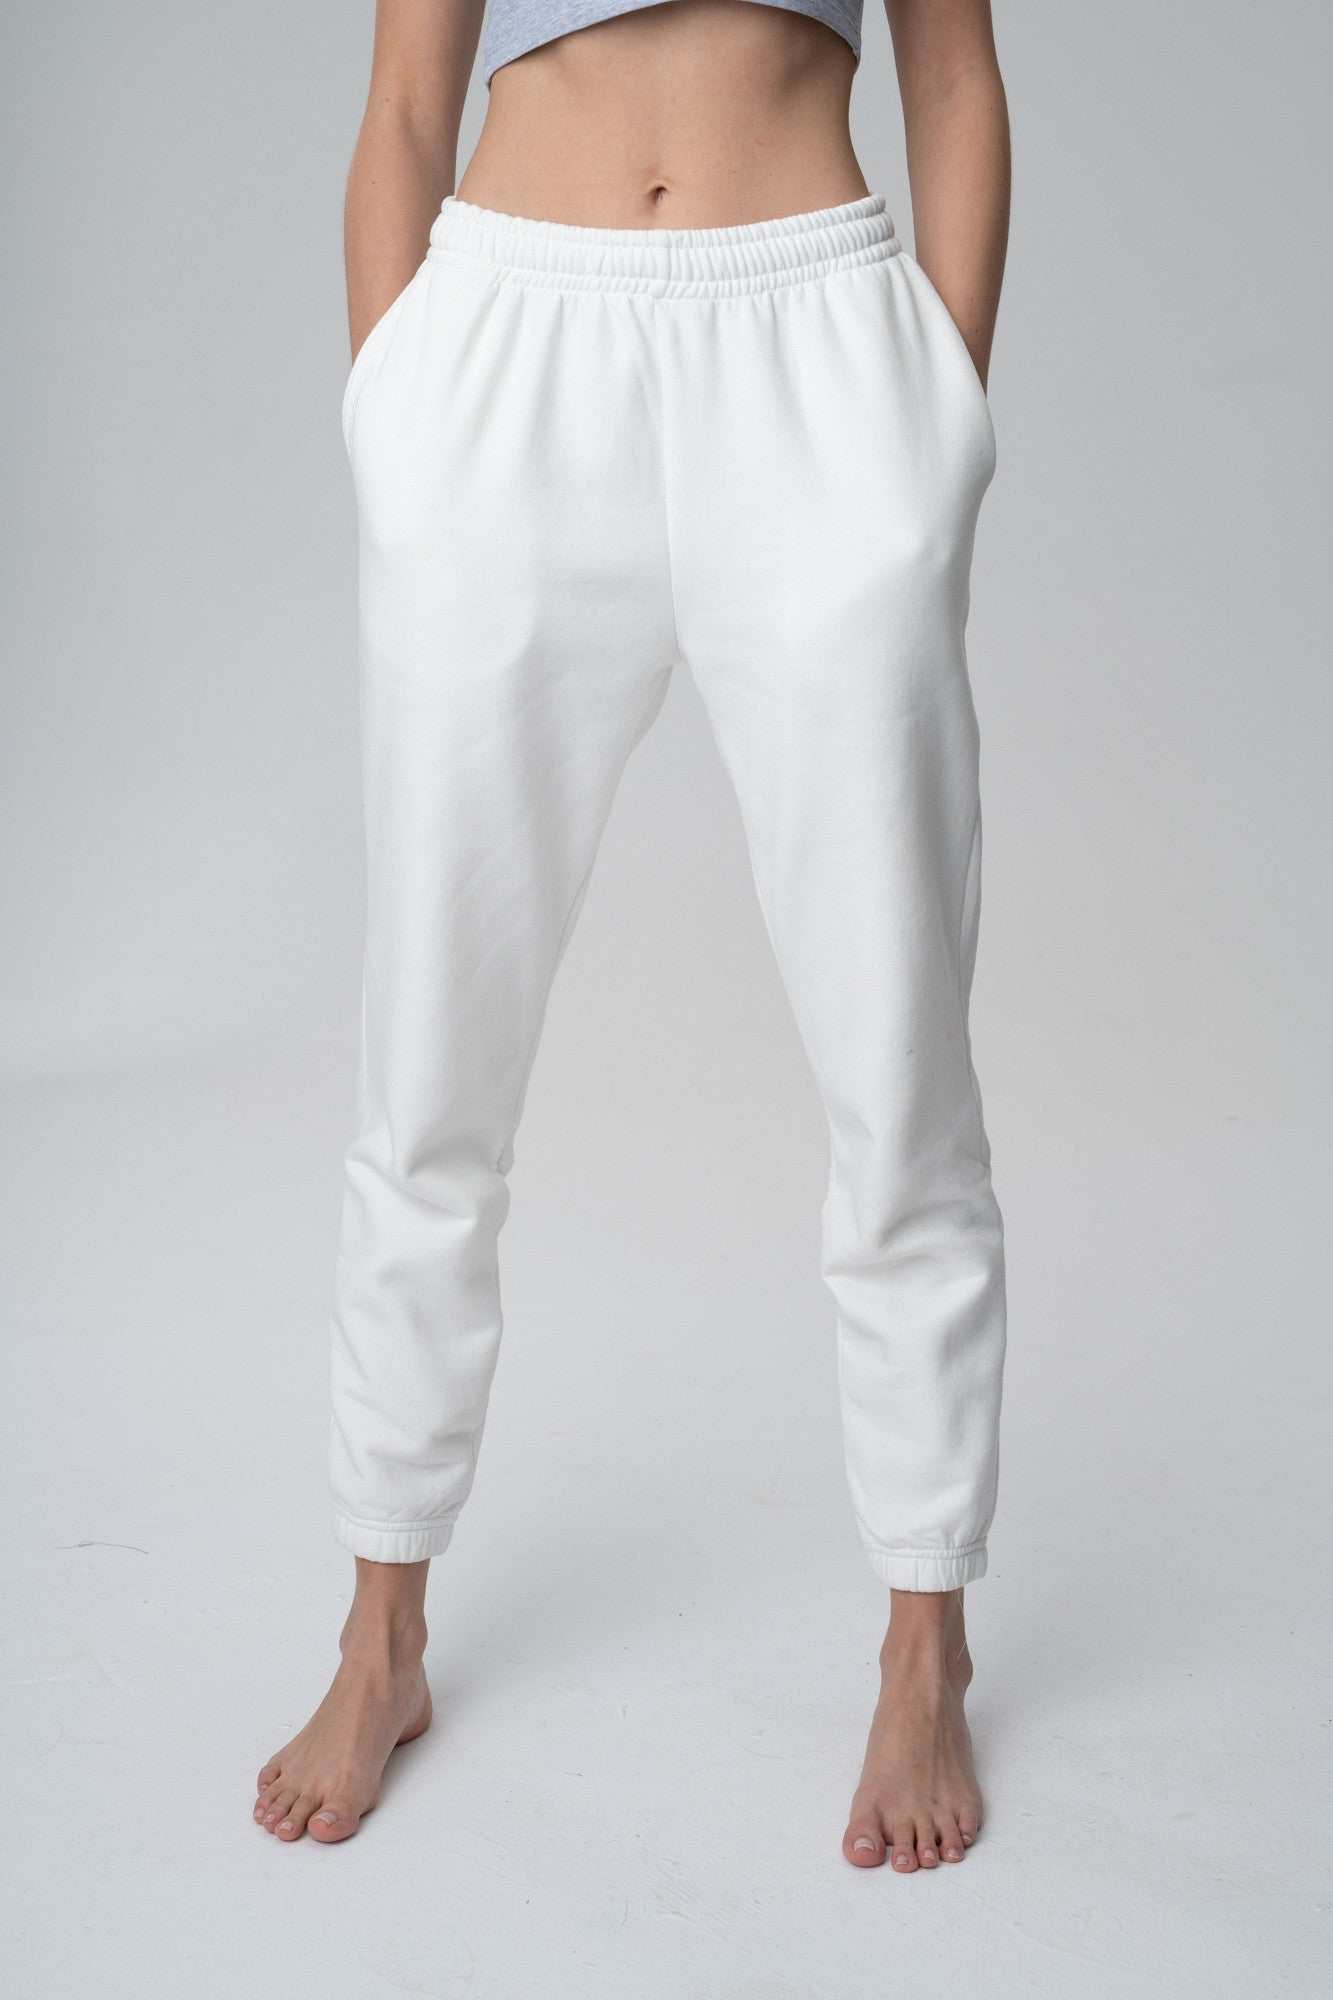 Off White Thin Sweatpants - Les Goodies